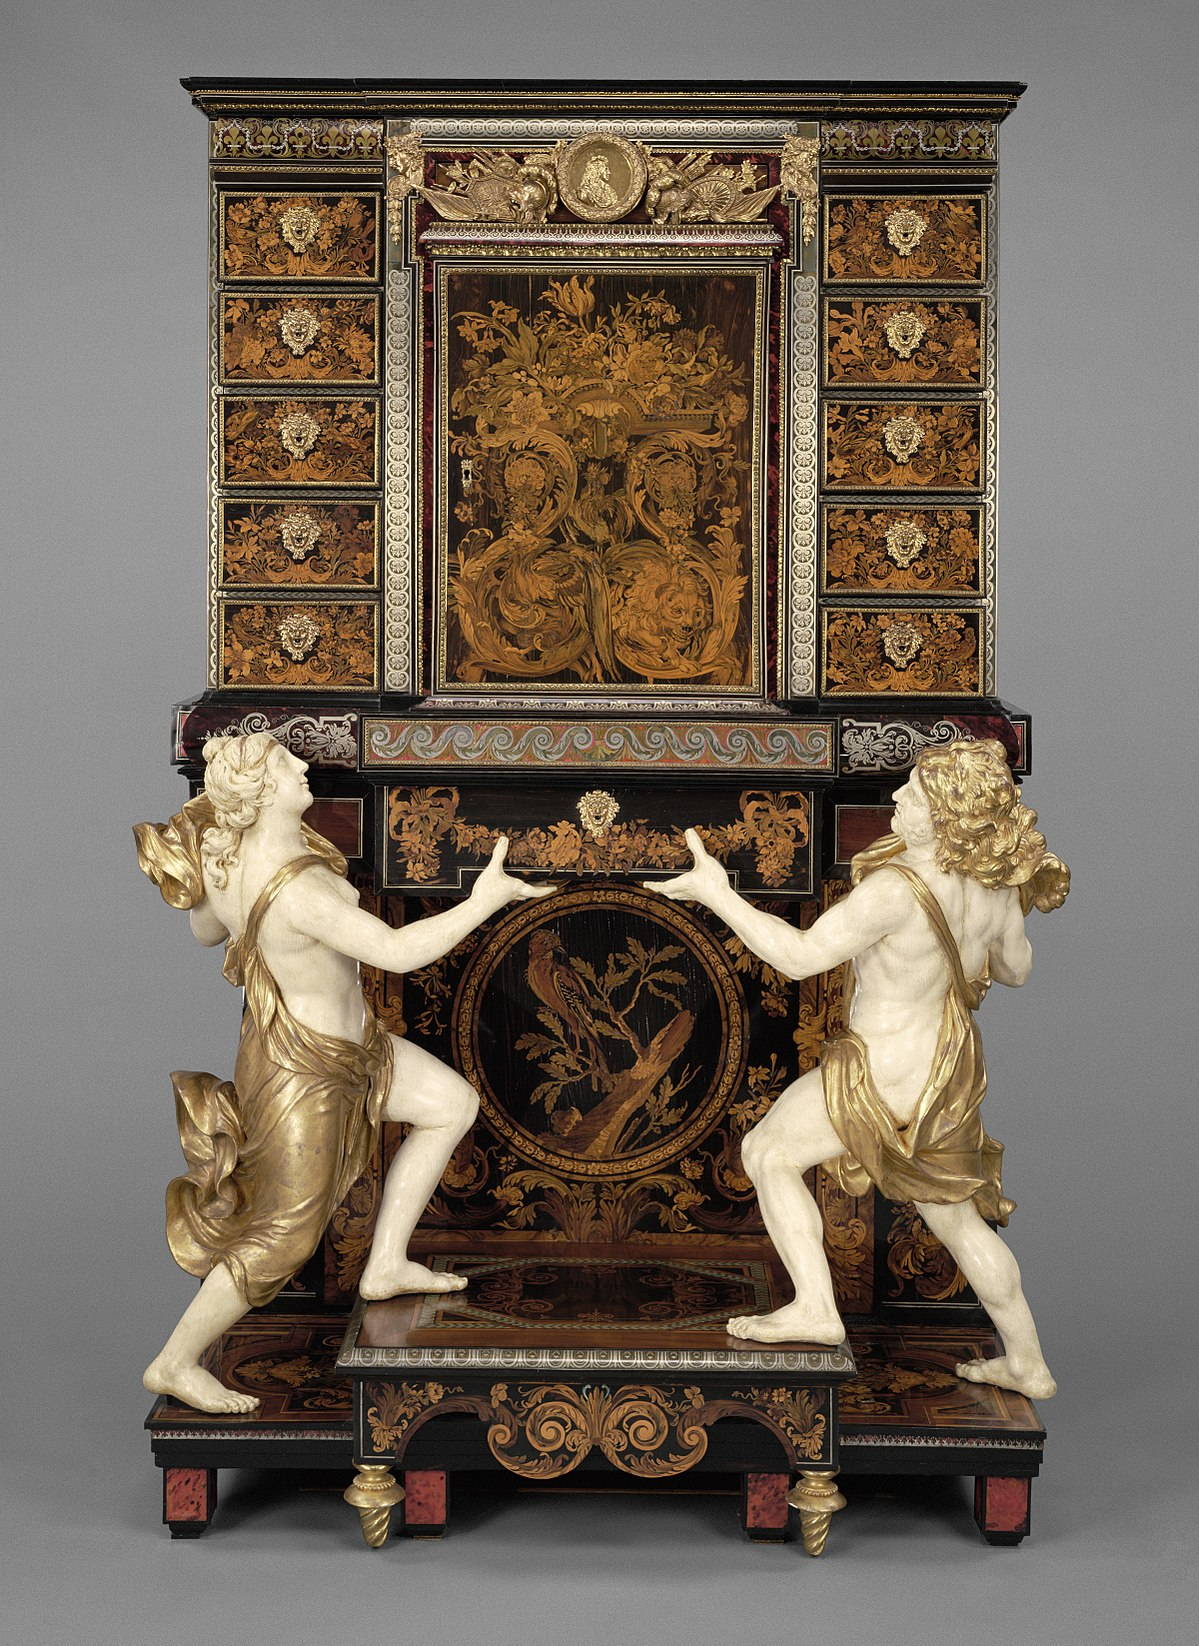 Louis Xiv Furniture Wikipedia